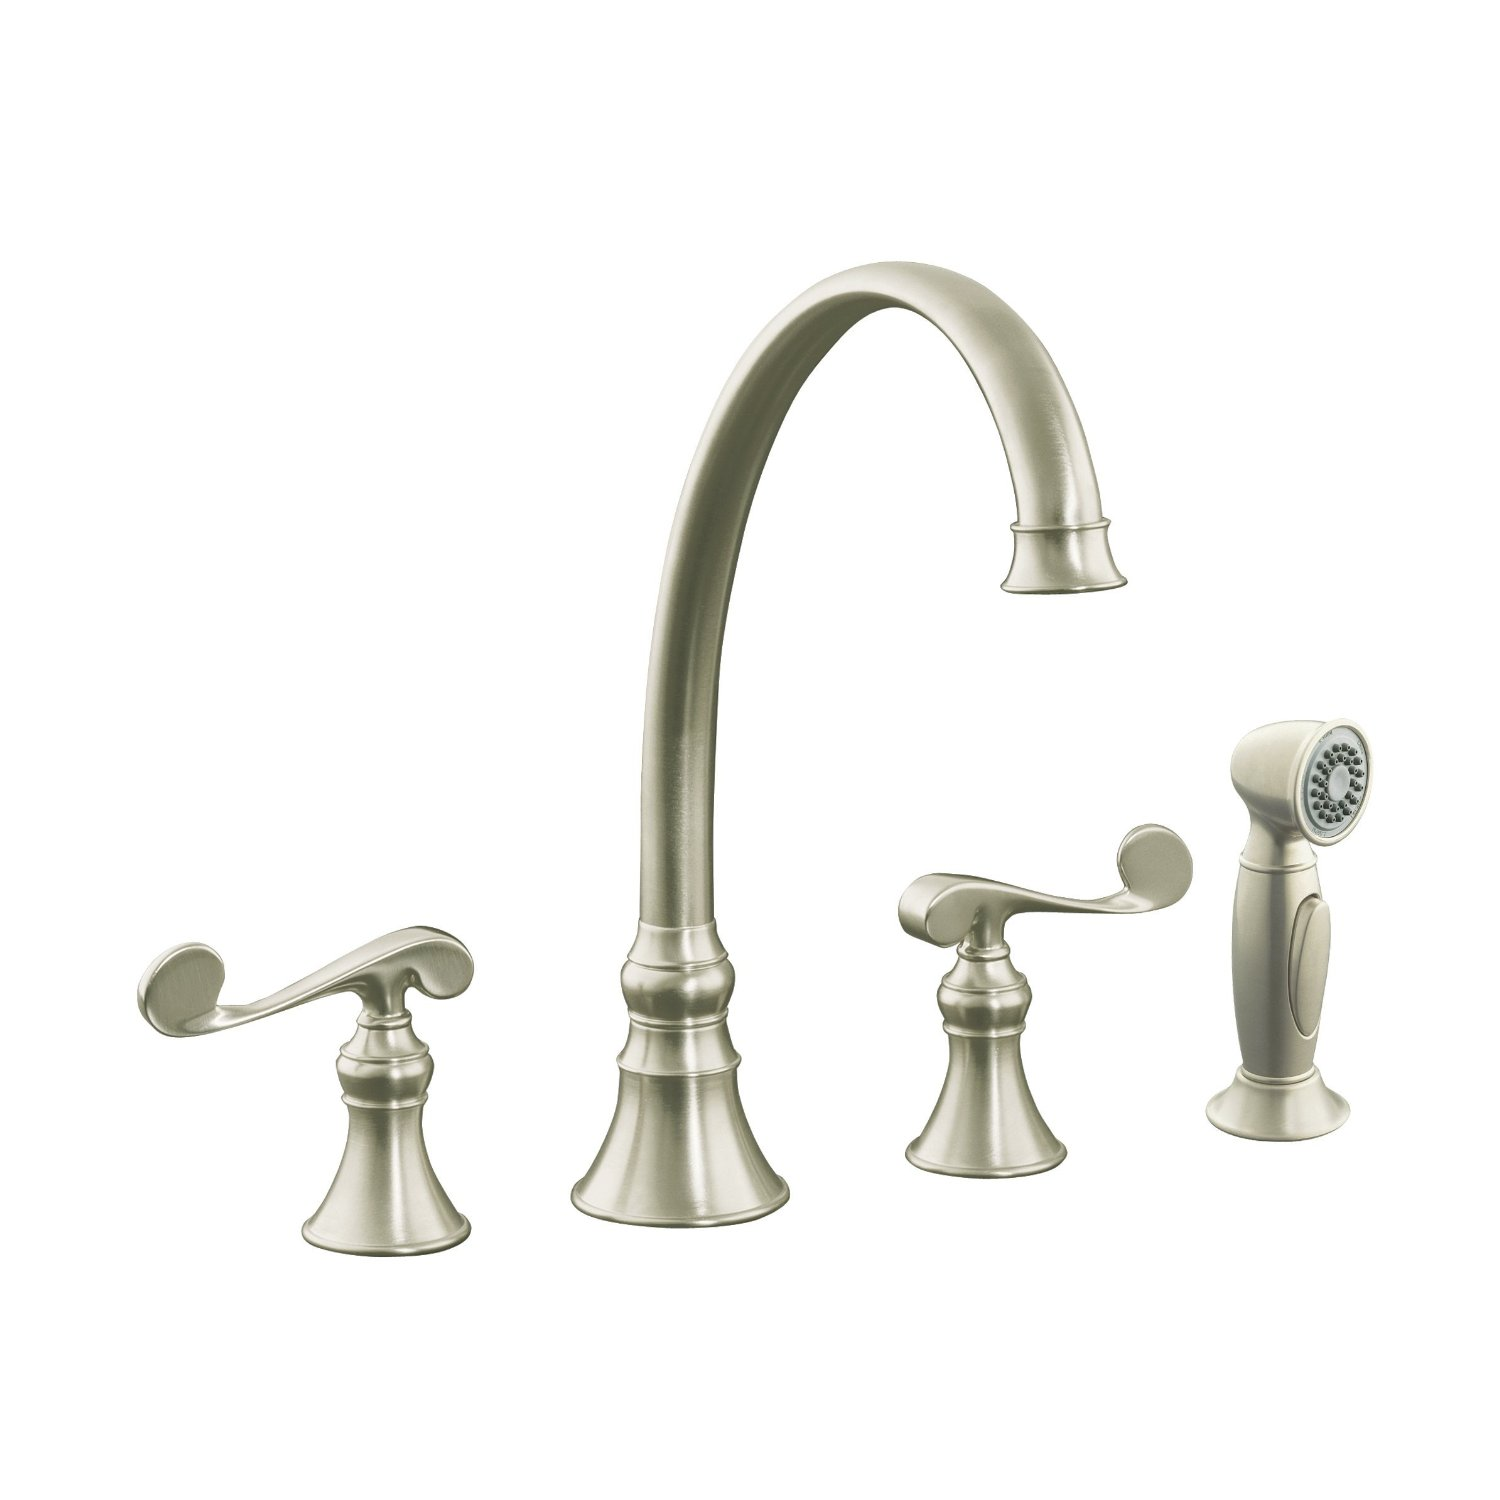 shop for best kohler k 16109 4 bn revival kitchen sink faucet vibrant